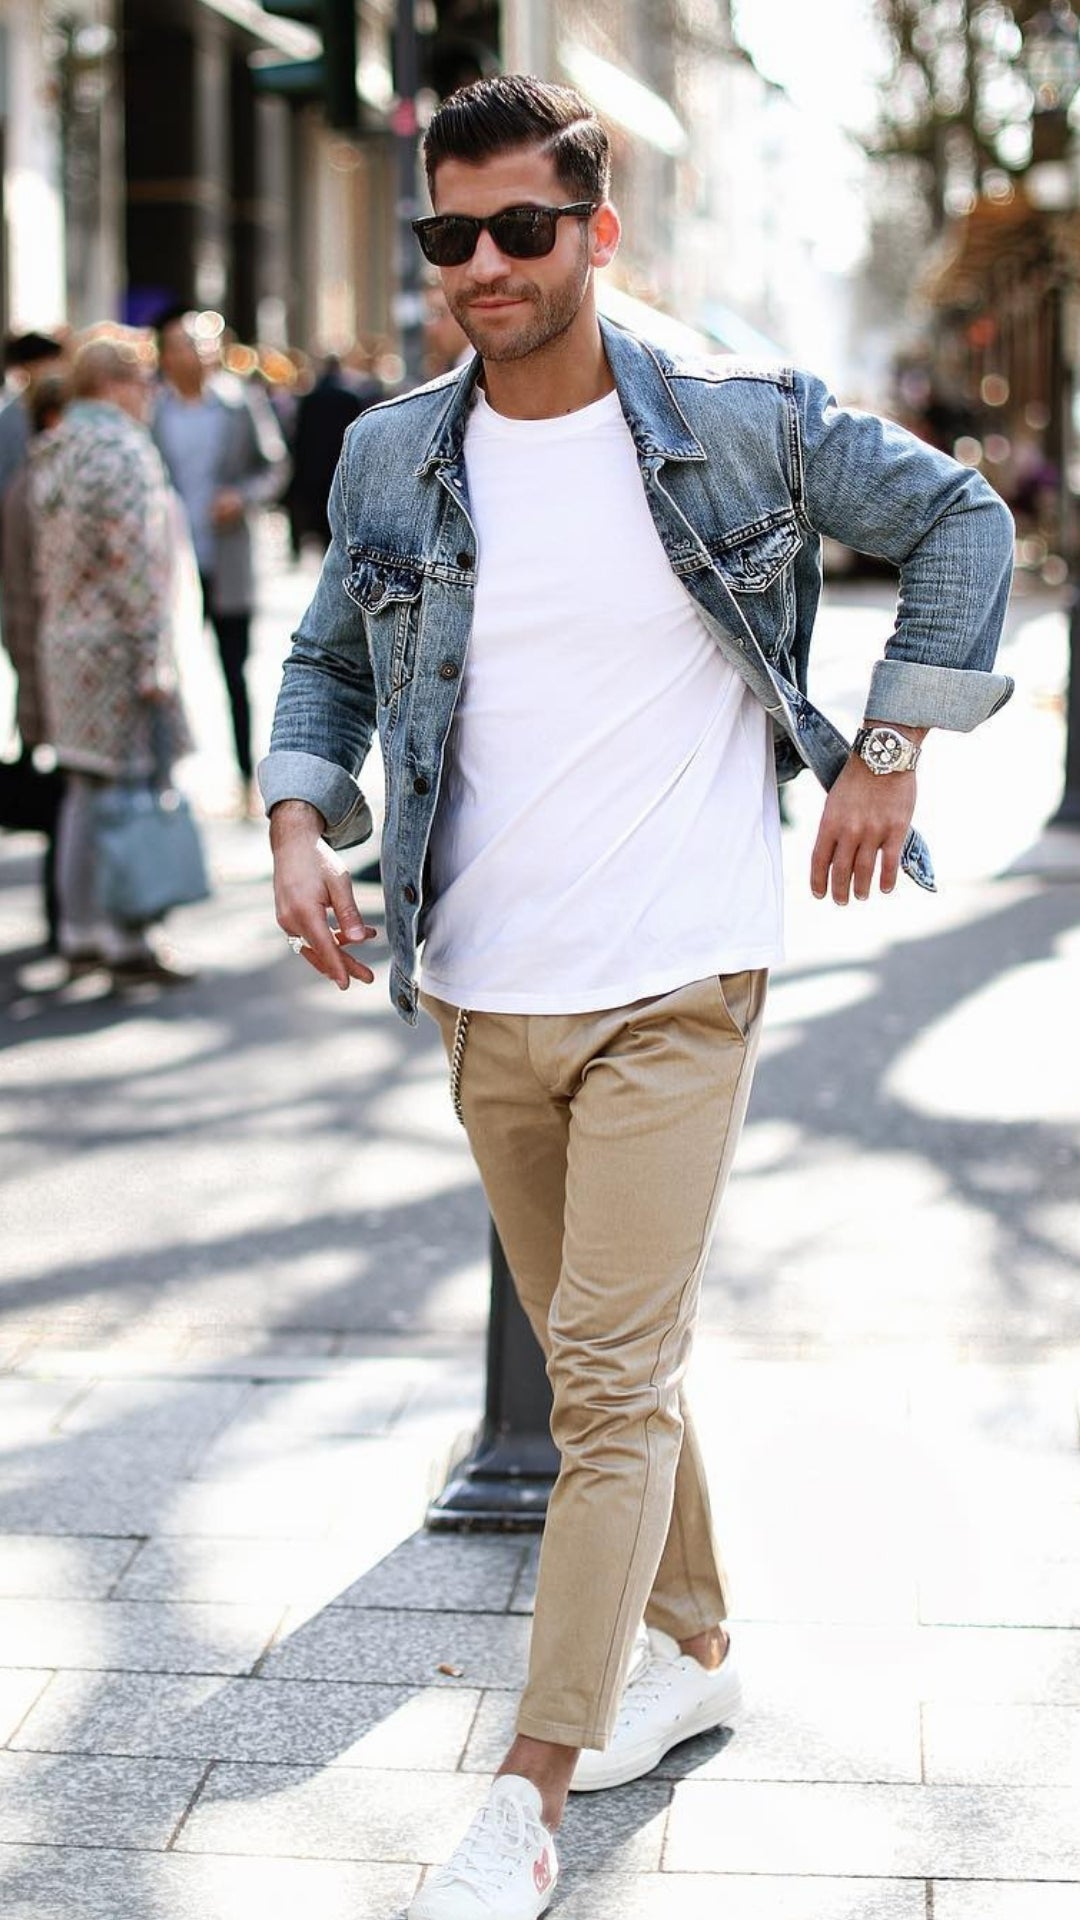 5 Cool Jacket Outfits You Can Steal #jacket #outfits #mensfashion #streetstyle